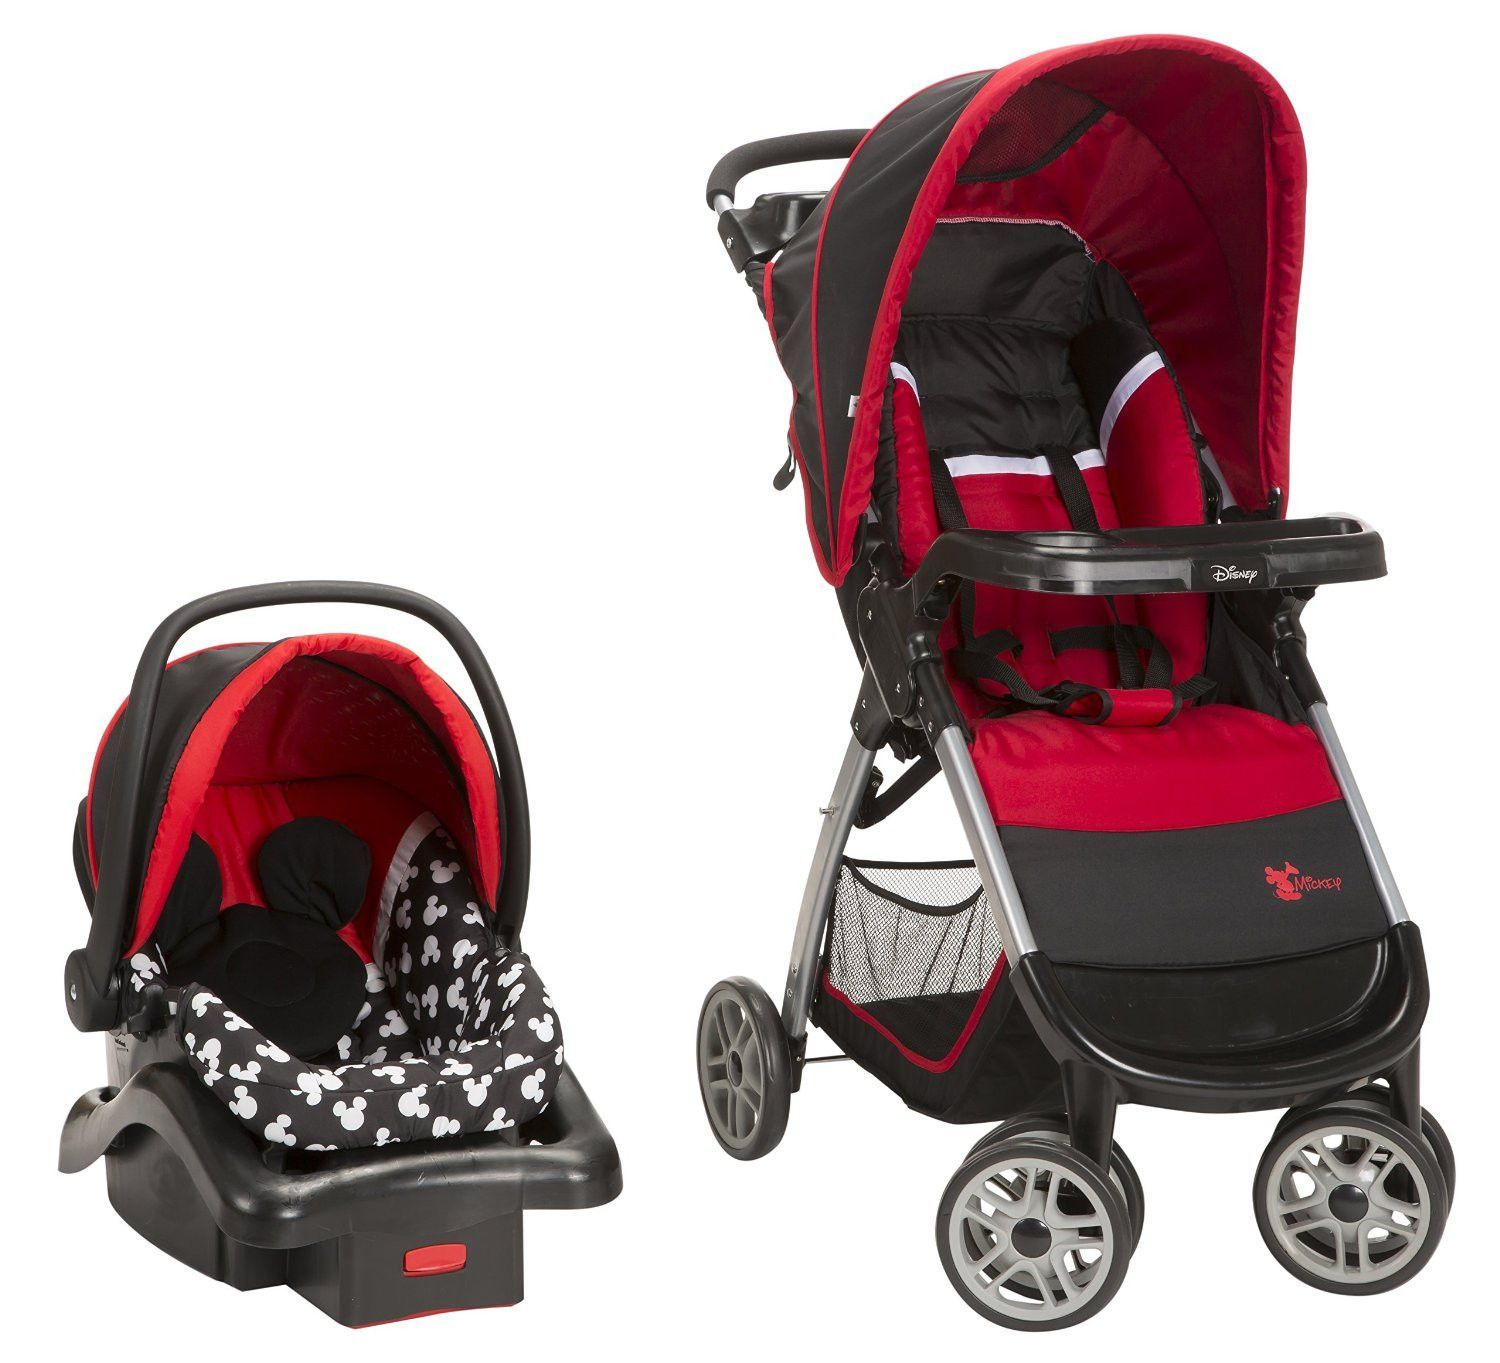 Bring a little magic to your strolls with the Disney Baby Amble Quad Travel System featuring